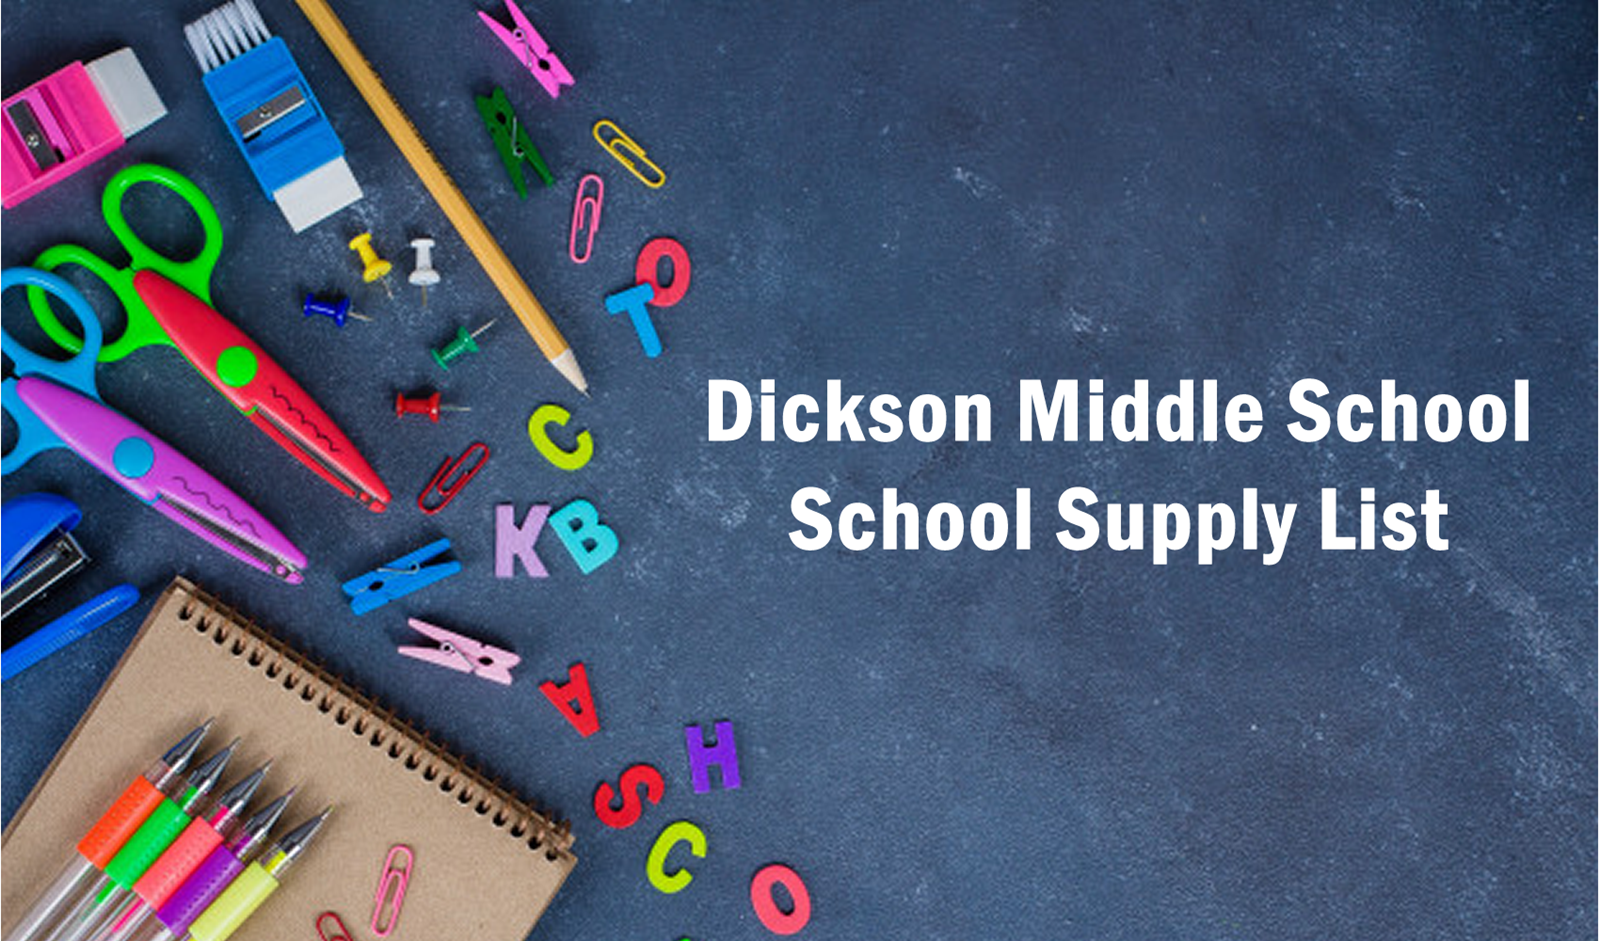 DMS Supplies